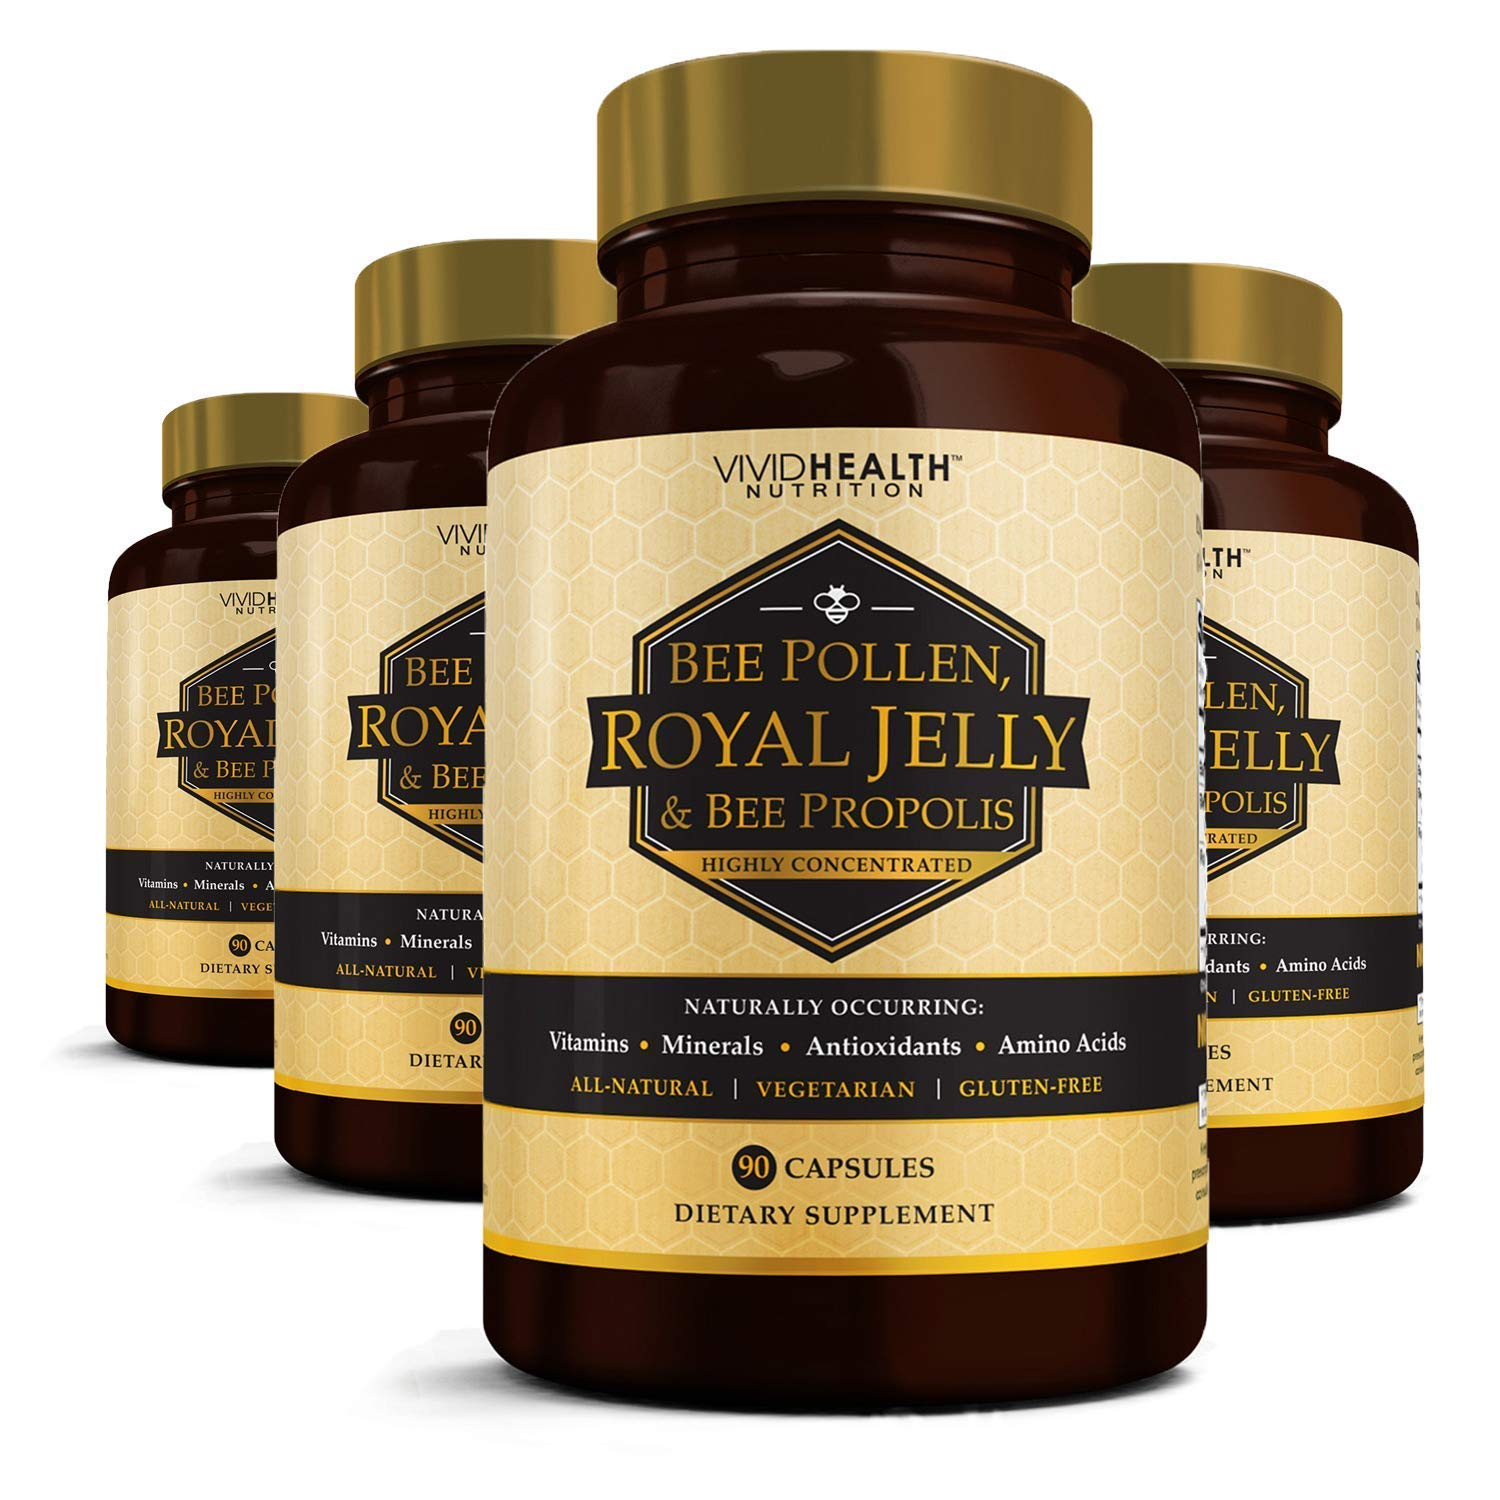 Immune Boosting, High Potency Royal Jelly (4 Bottles) Supplement with Bee Pollen & Propolis | Concentrated, Pure Superfood for Weight Loss, Energy, Clear Skin, 90 Vegetarian Caps Each